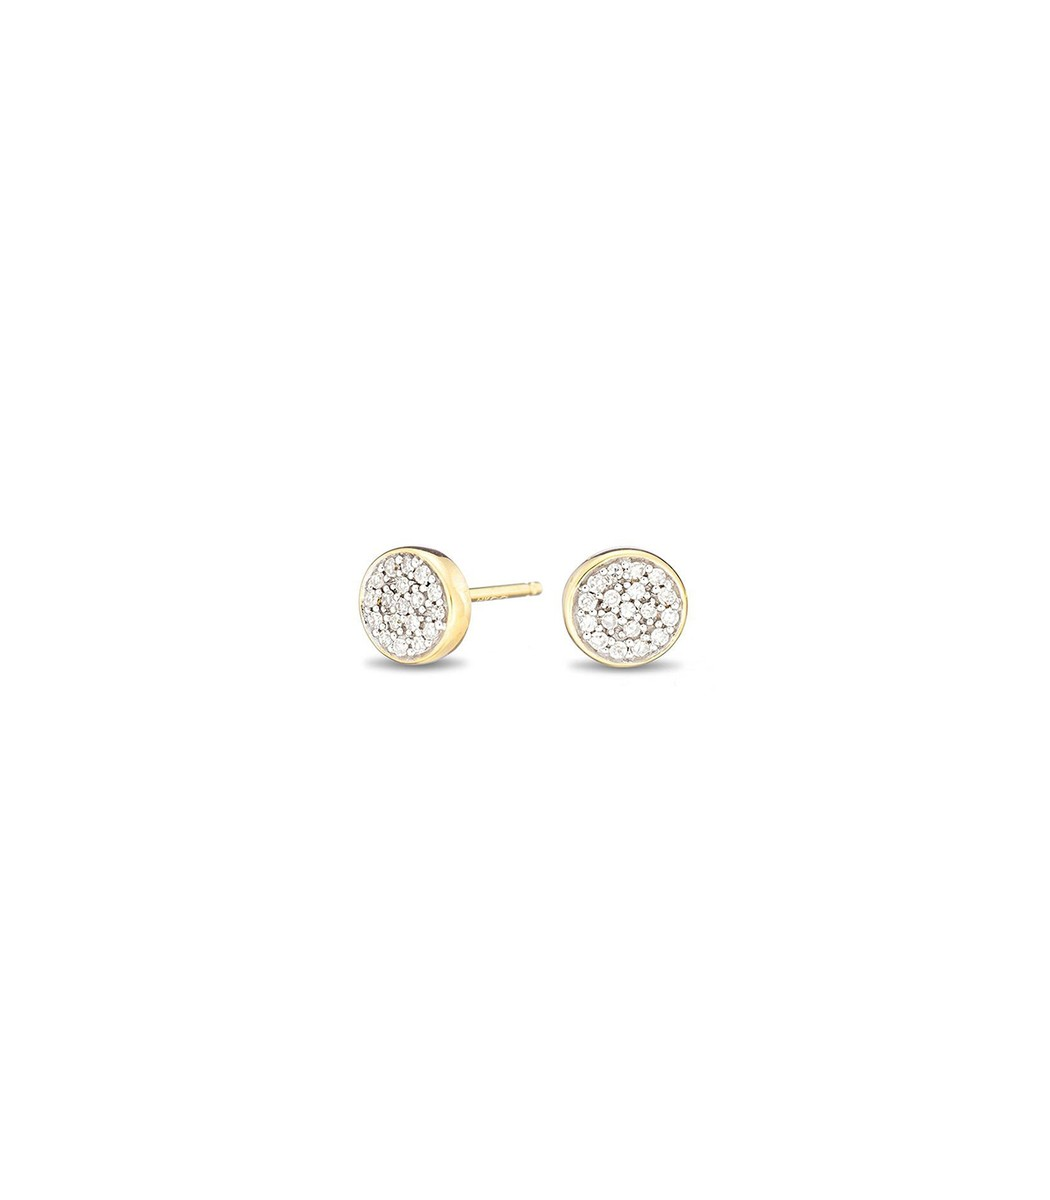 ADINA REYTER Yellow Gold Solid Pave Disc Posts